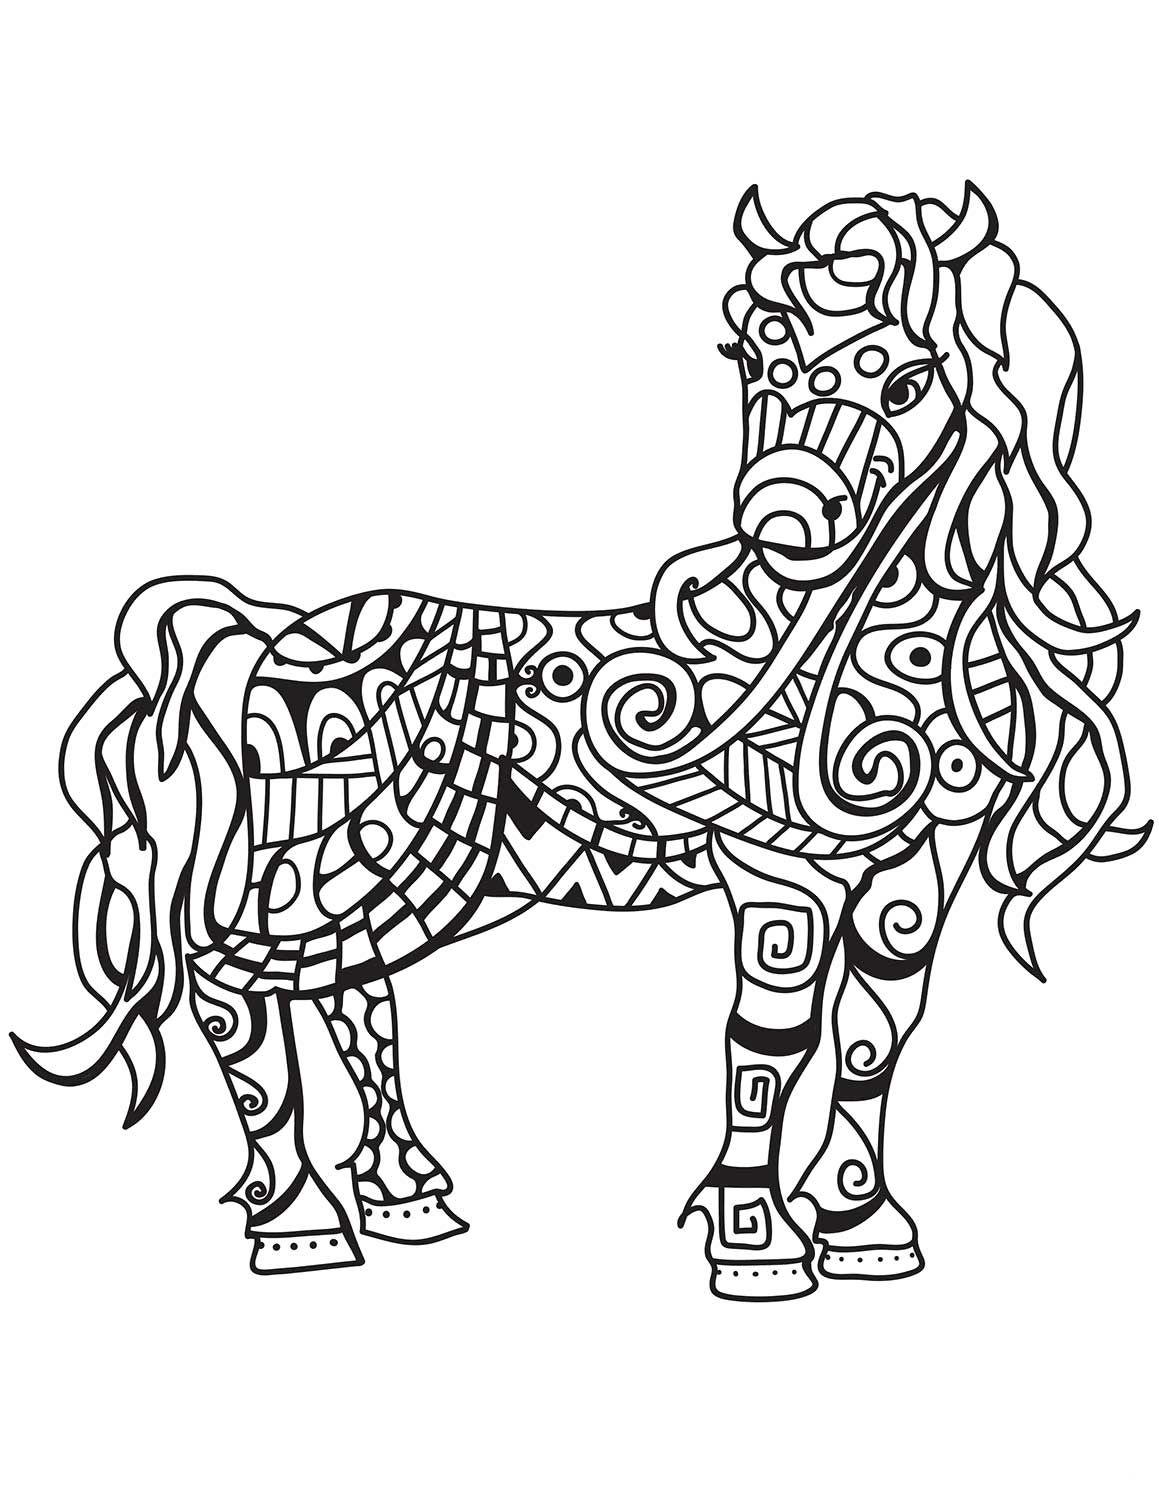 Horse Zentangle Coloring Page Horse Coloring Pages Horse Coloring Horse Coloring Books